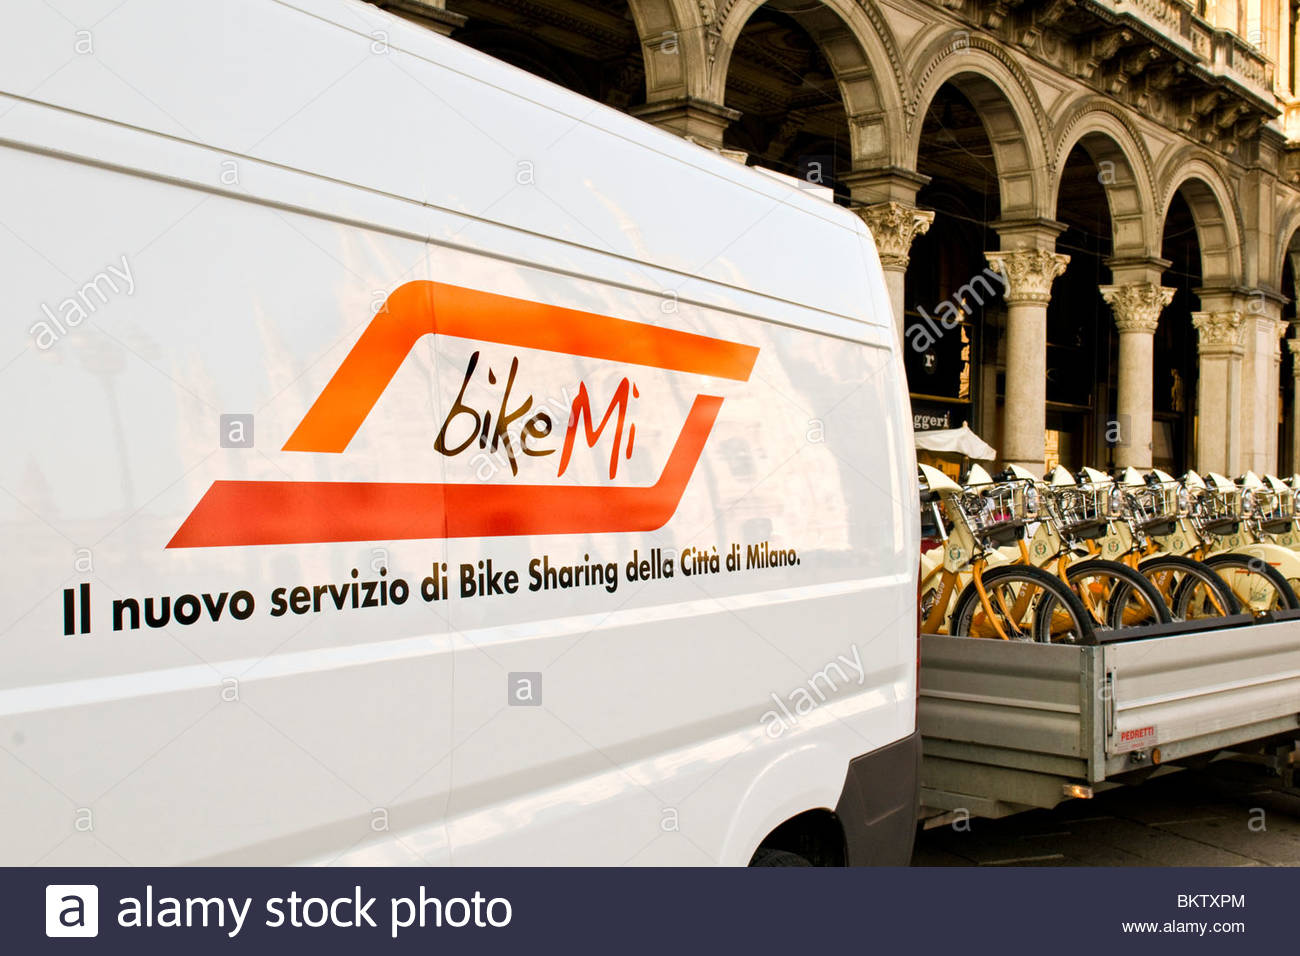 bicycles,bikesharing,Milan,Lombardy,Italy - Stock Image